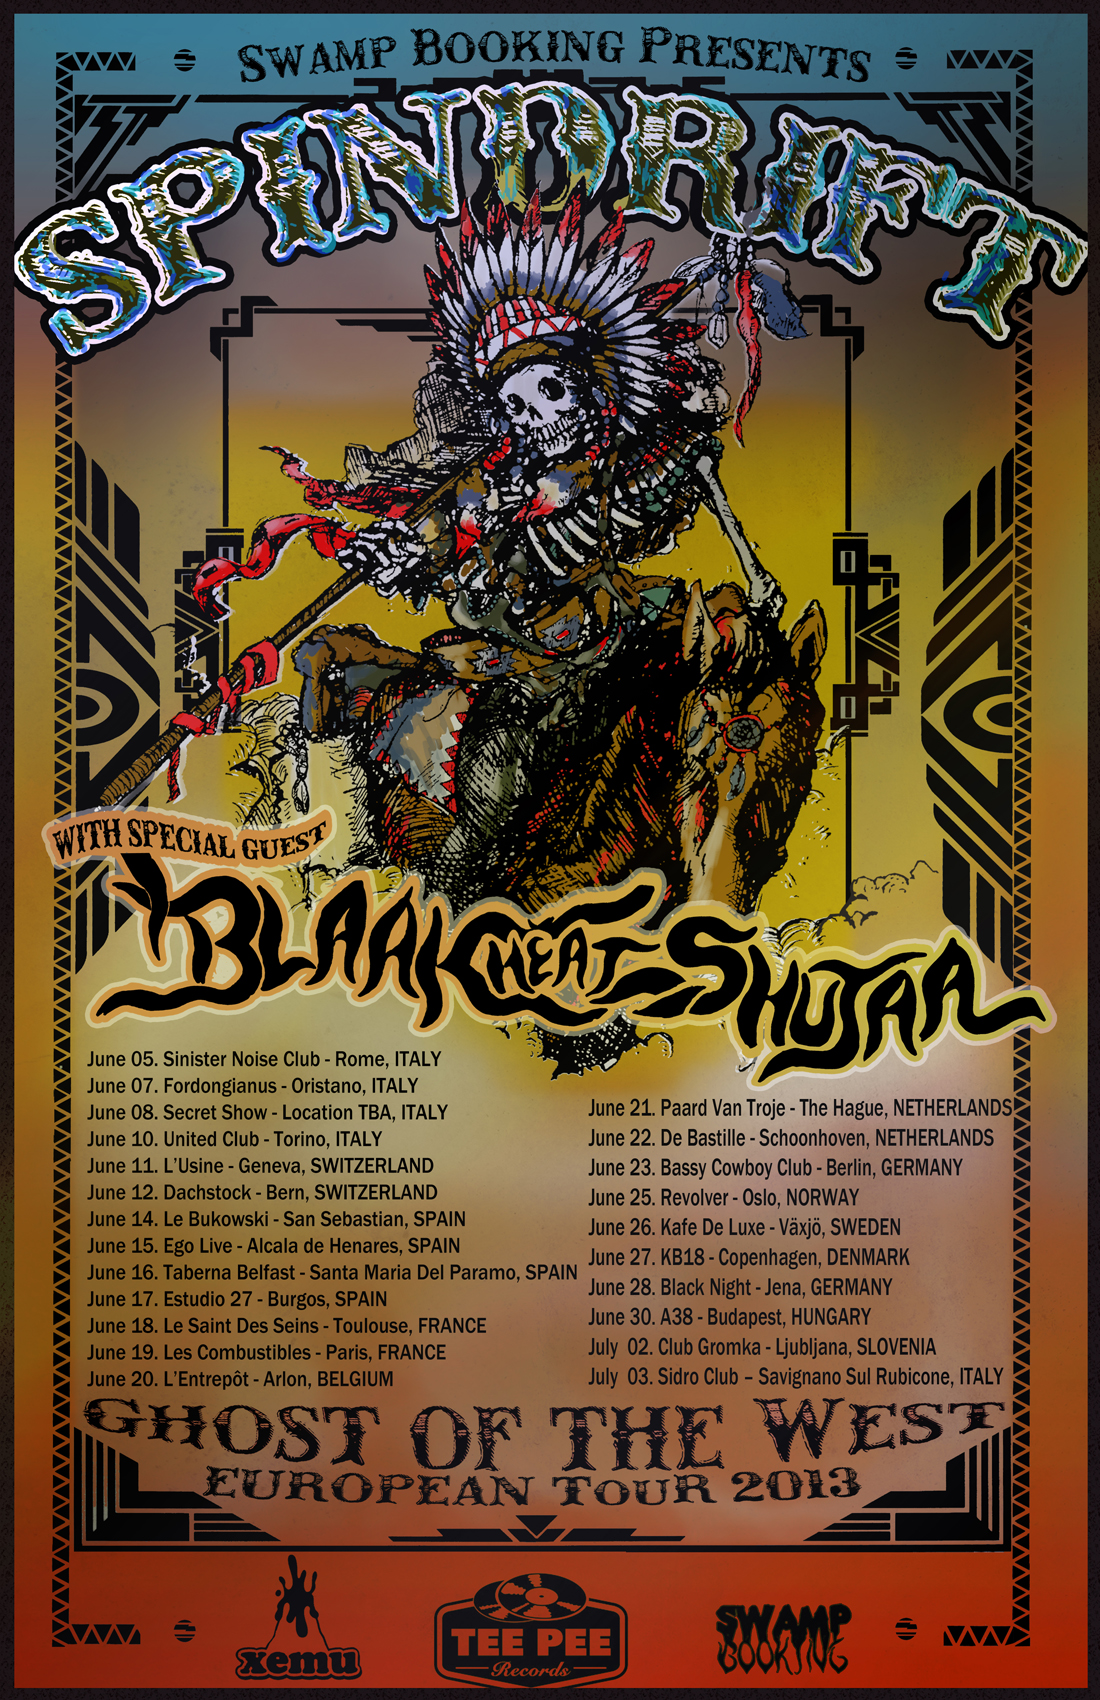 """Ghost of the West"" European Tour"